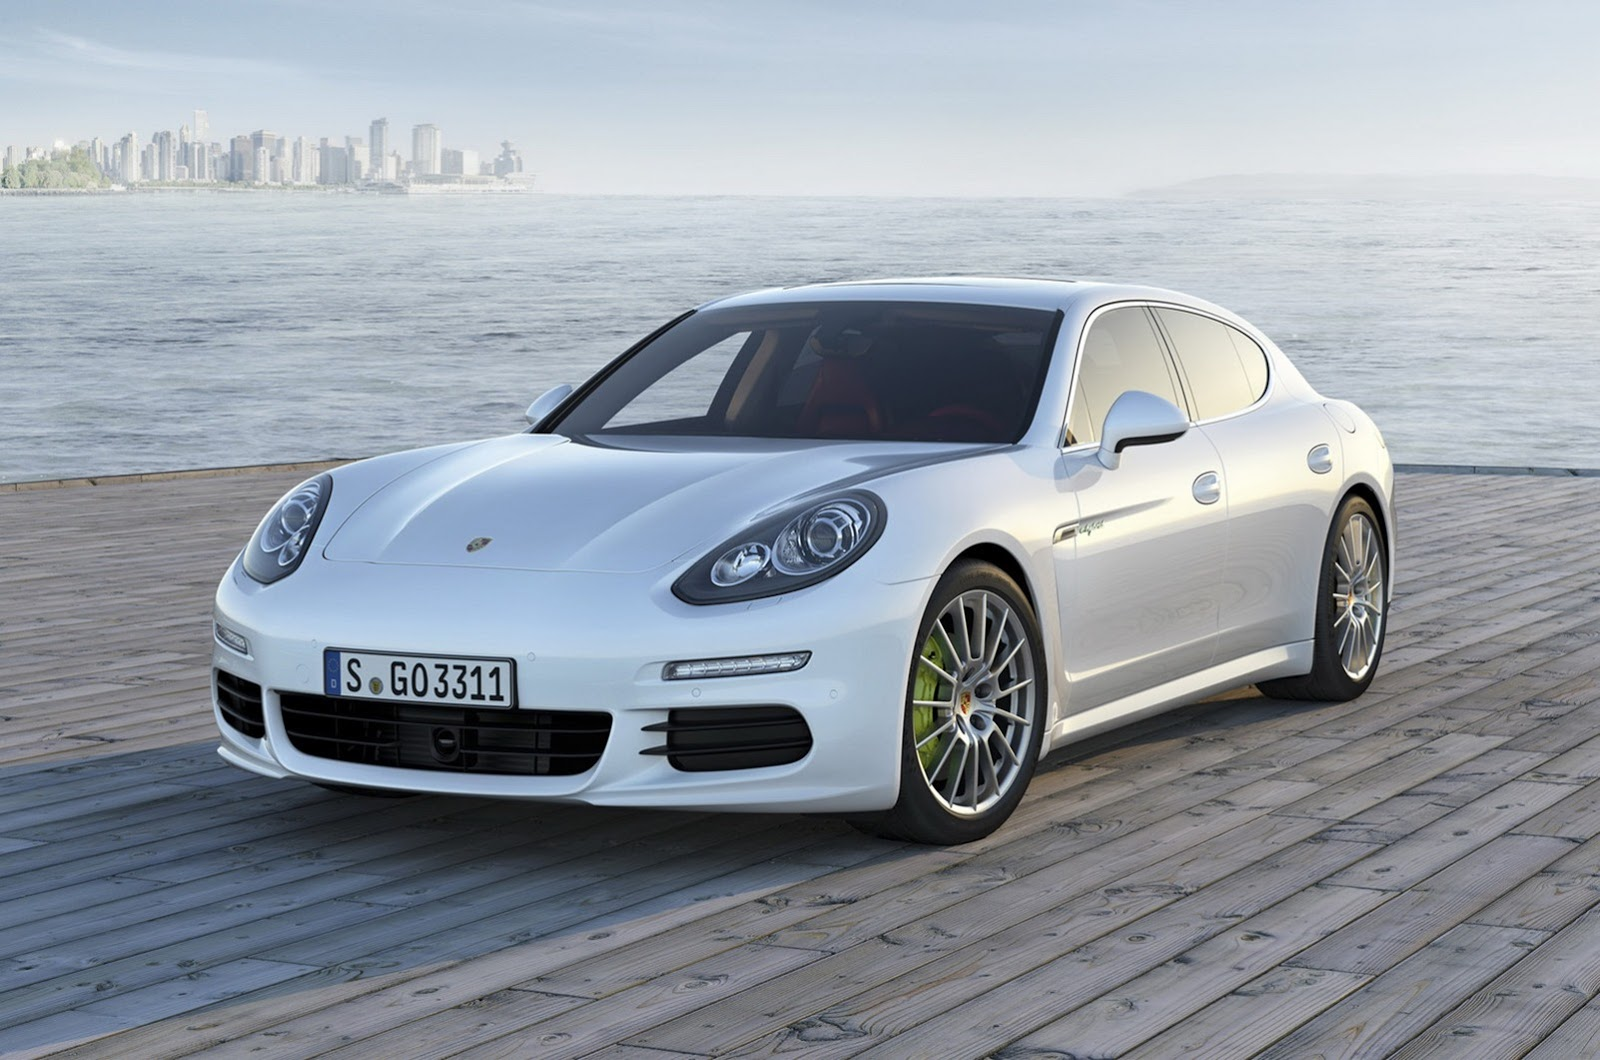 2014 Porsche Panamera Facelift First Photos Leaked ...